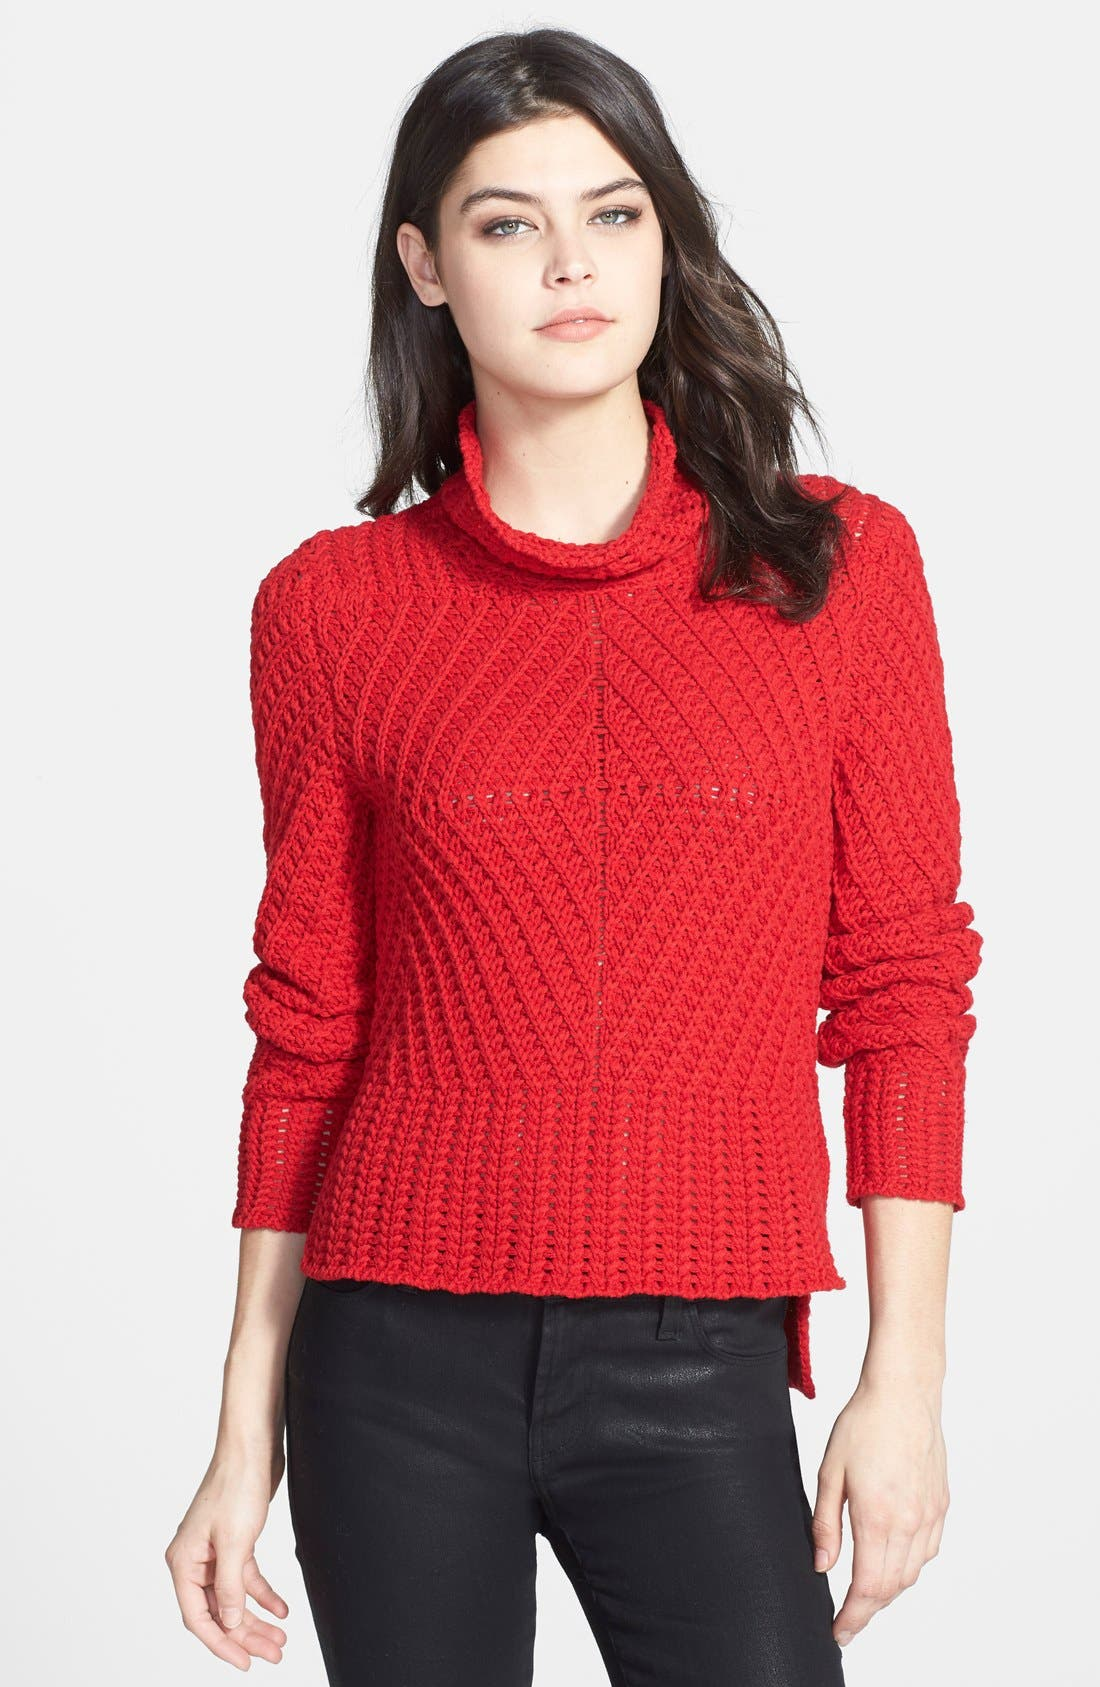 Main Image - 1.STATE Funnel Neck Cable Knit Sweater